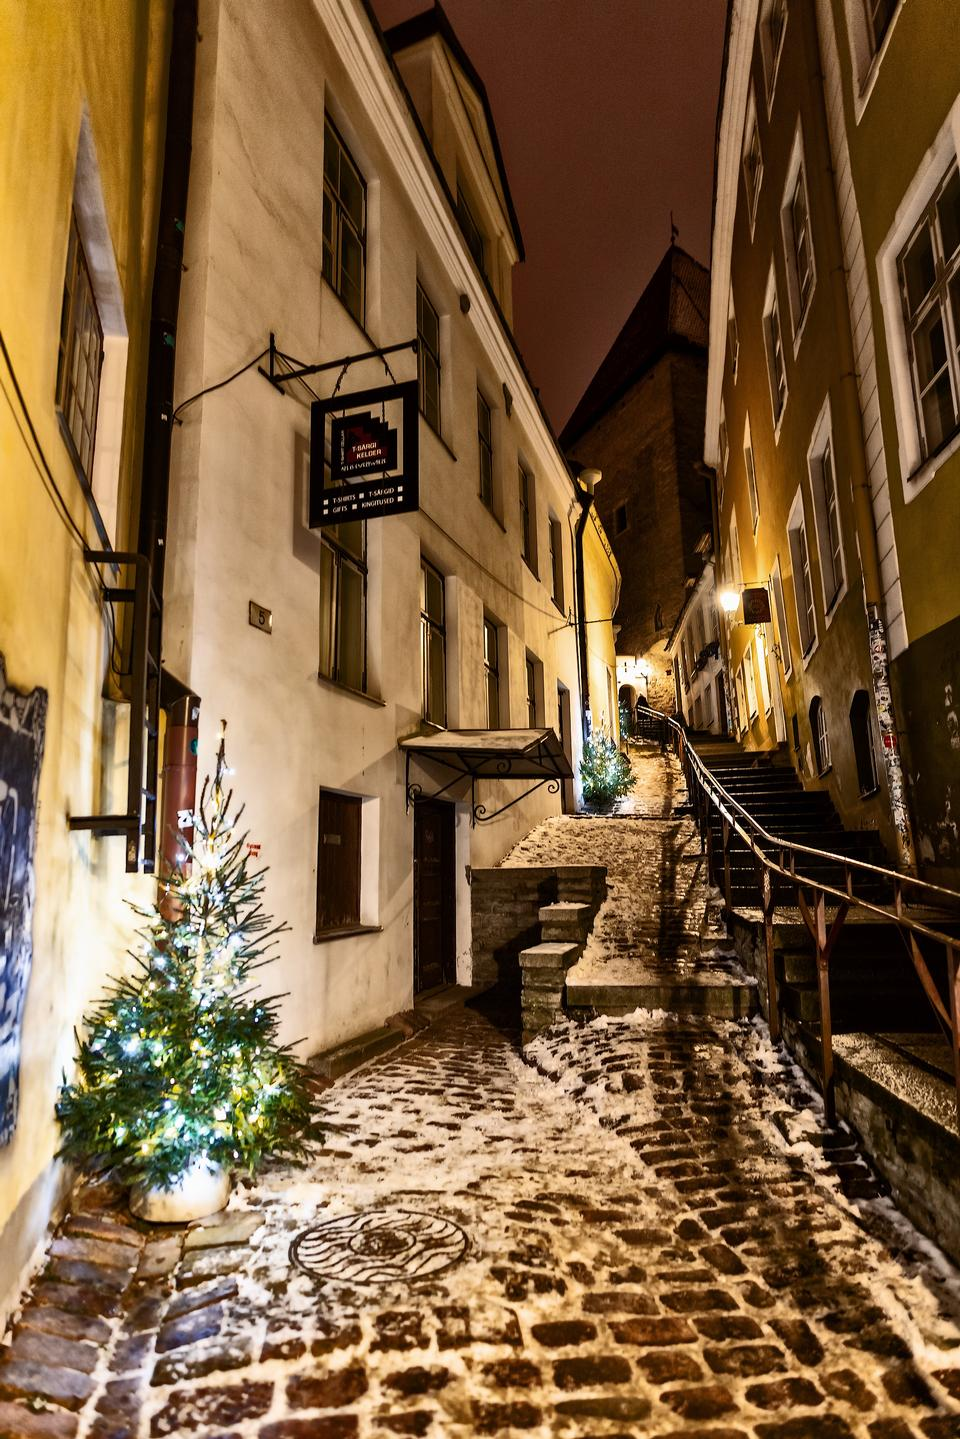 Street in a Christmas night in an old European town